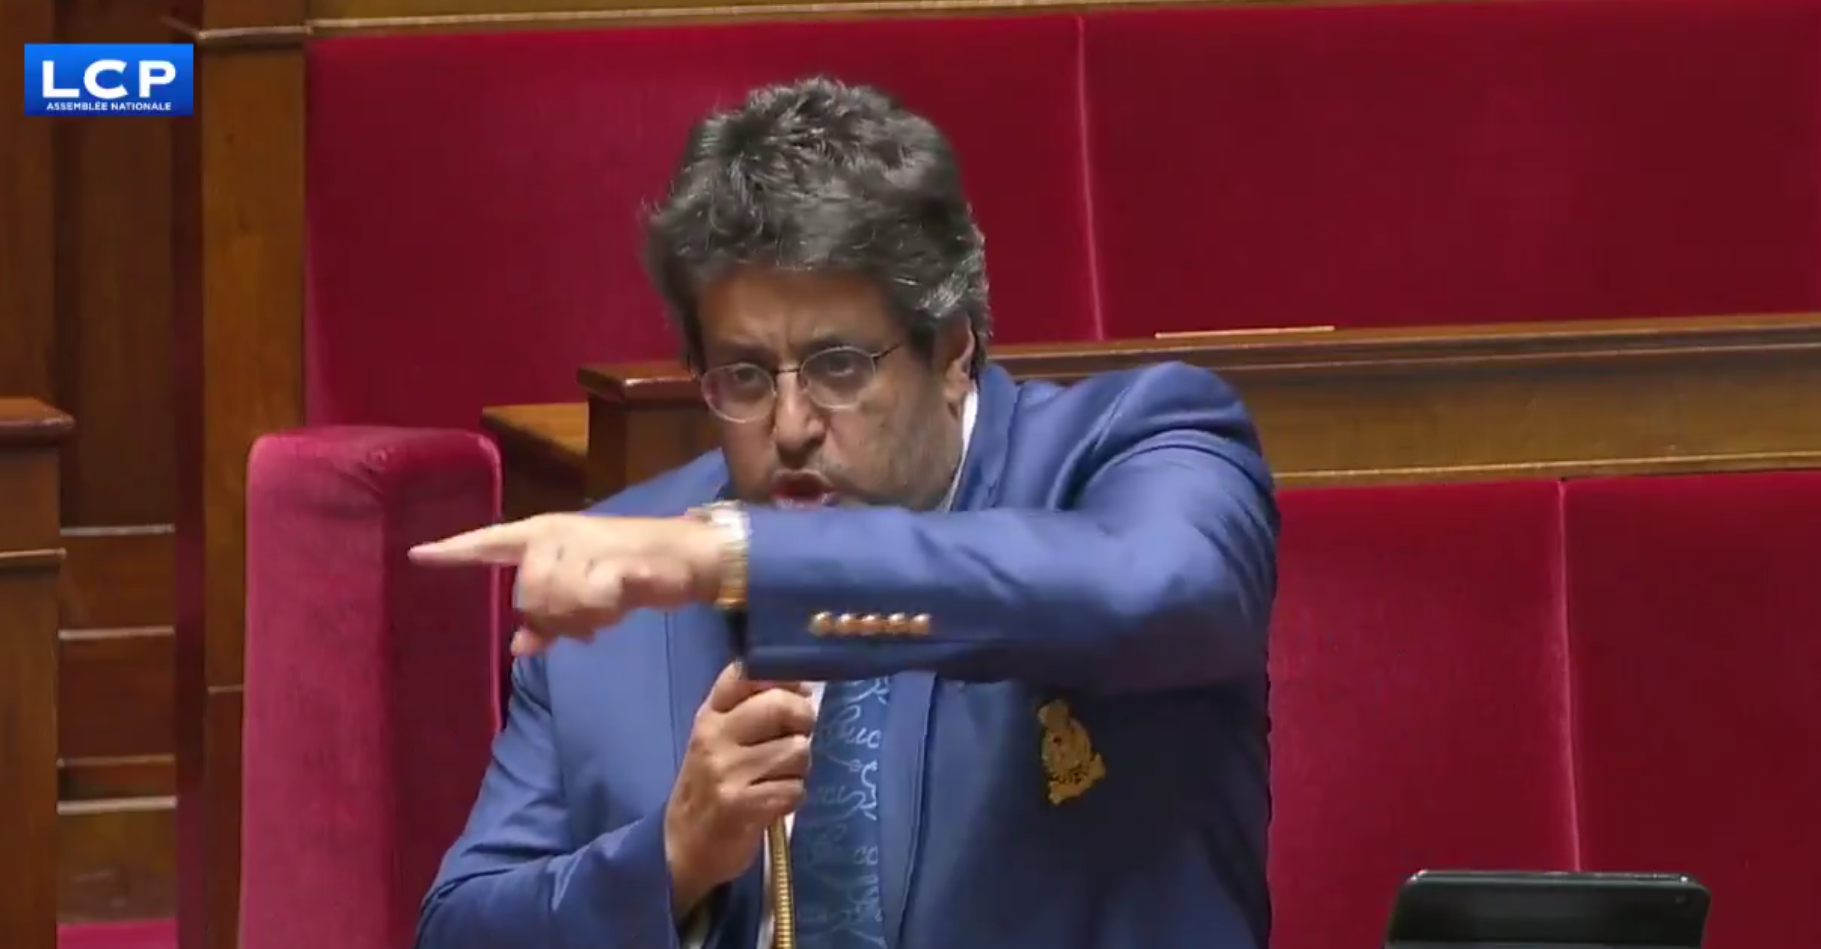 Meyer Habib in Parliament, demanding gentiles be prosecuted for their thoughts